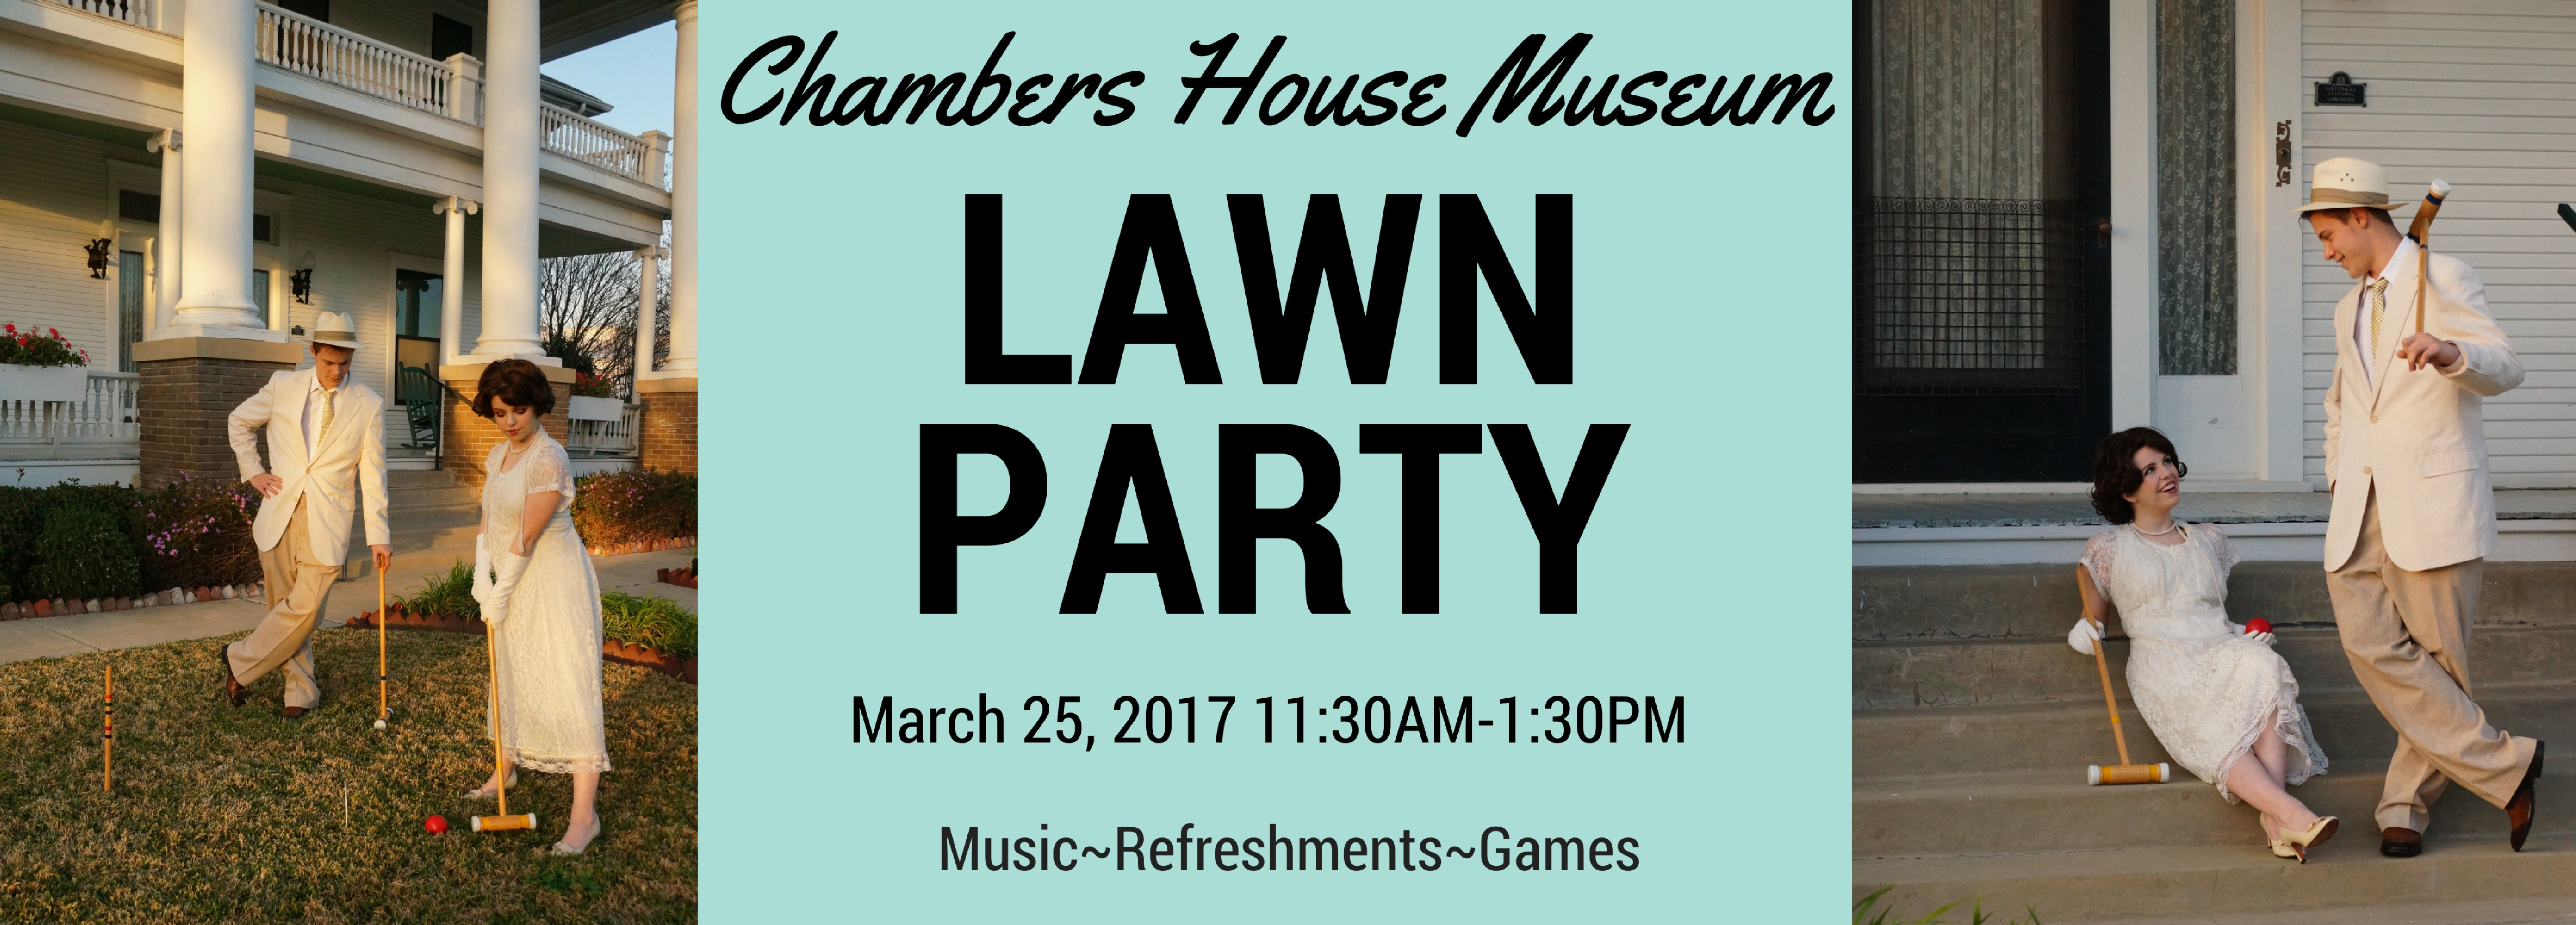 chambers-lawn-party-2017